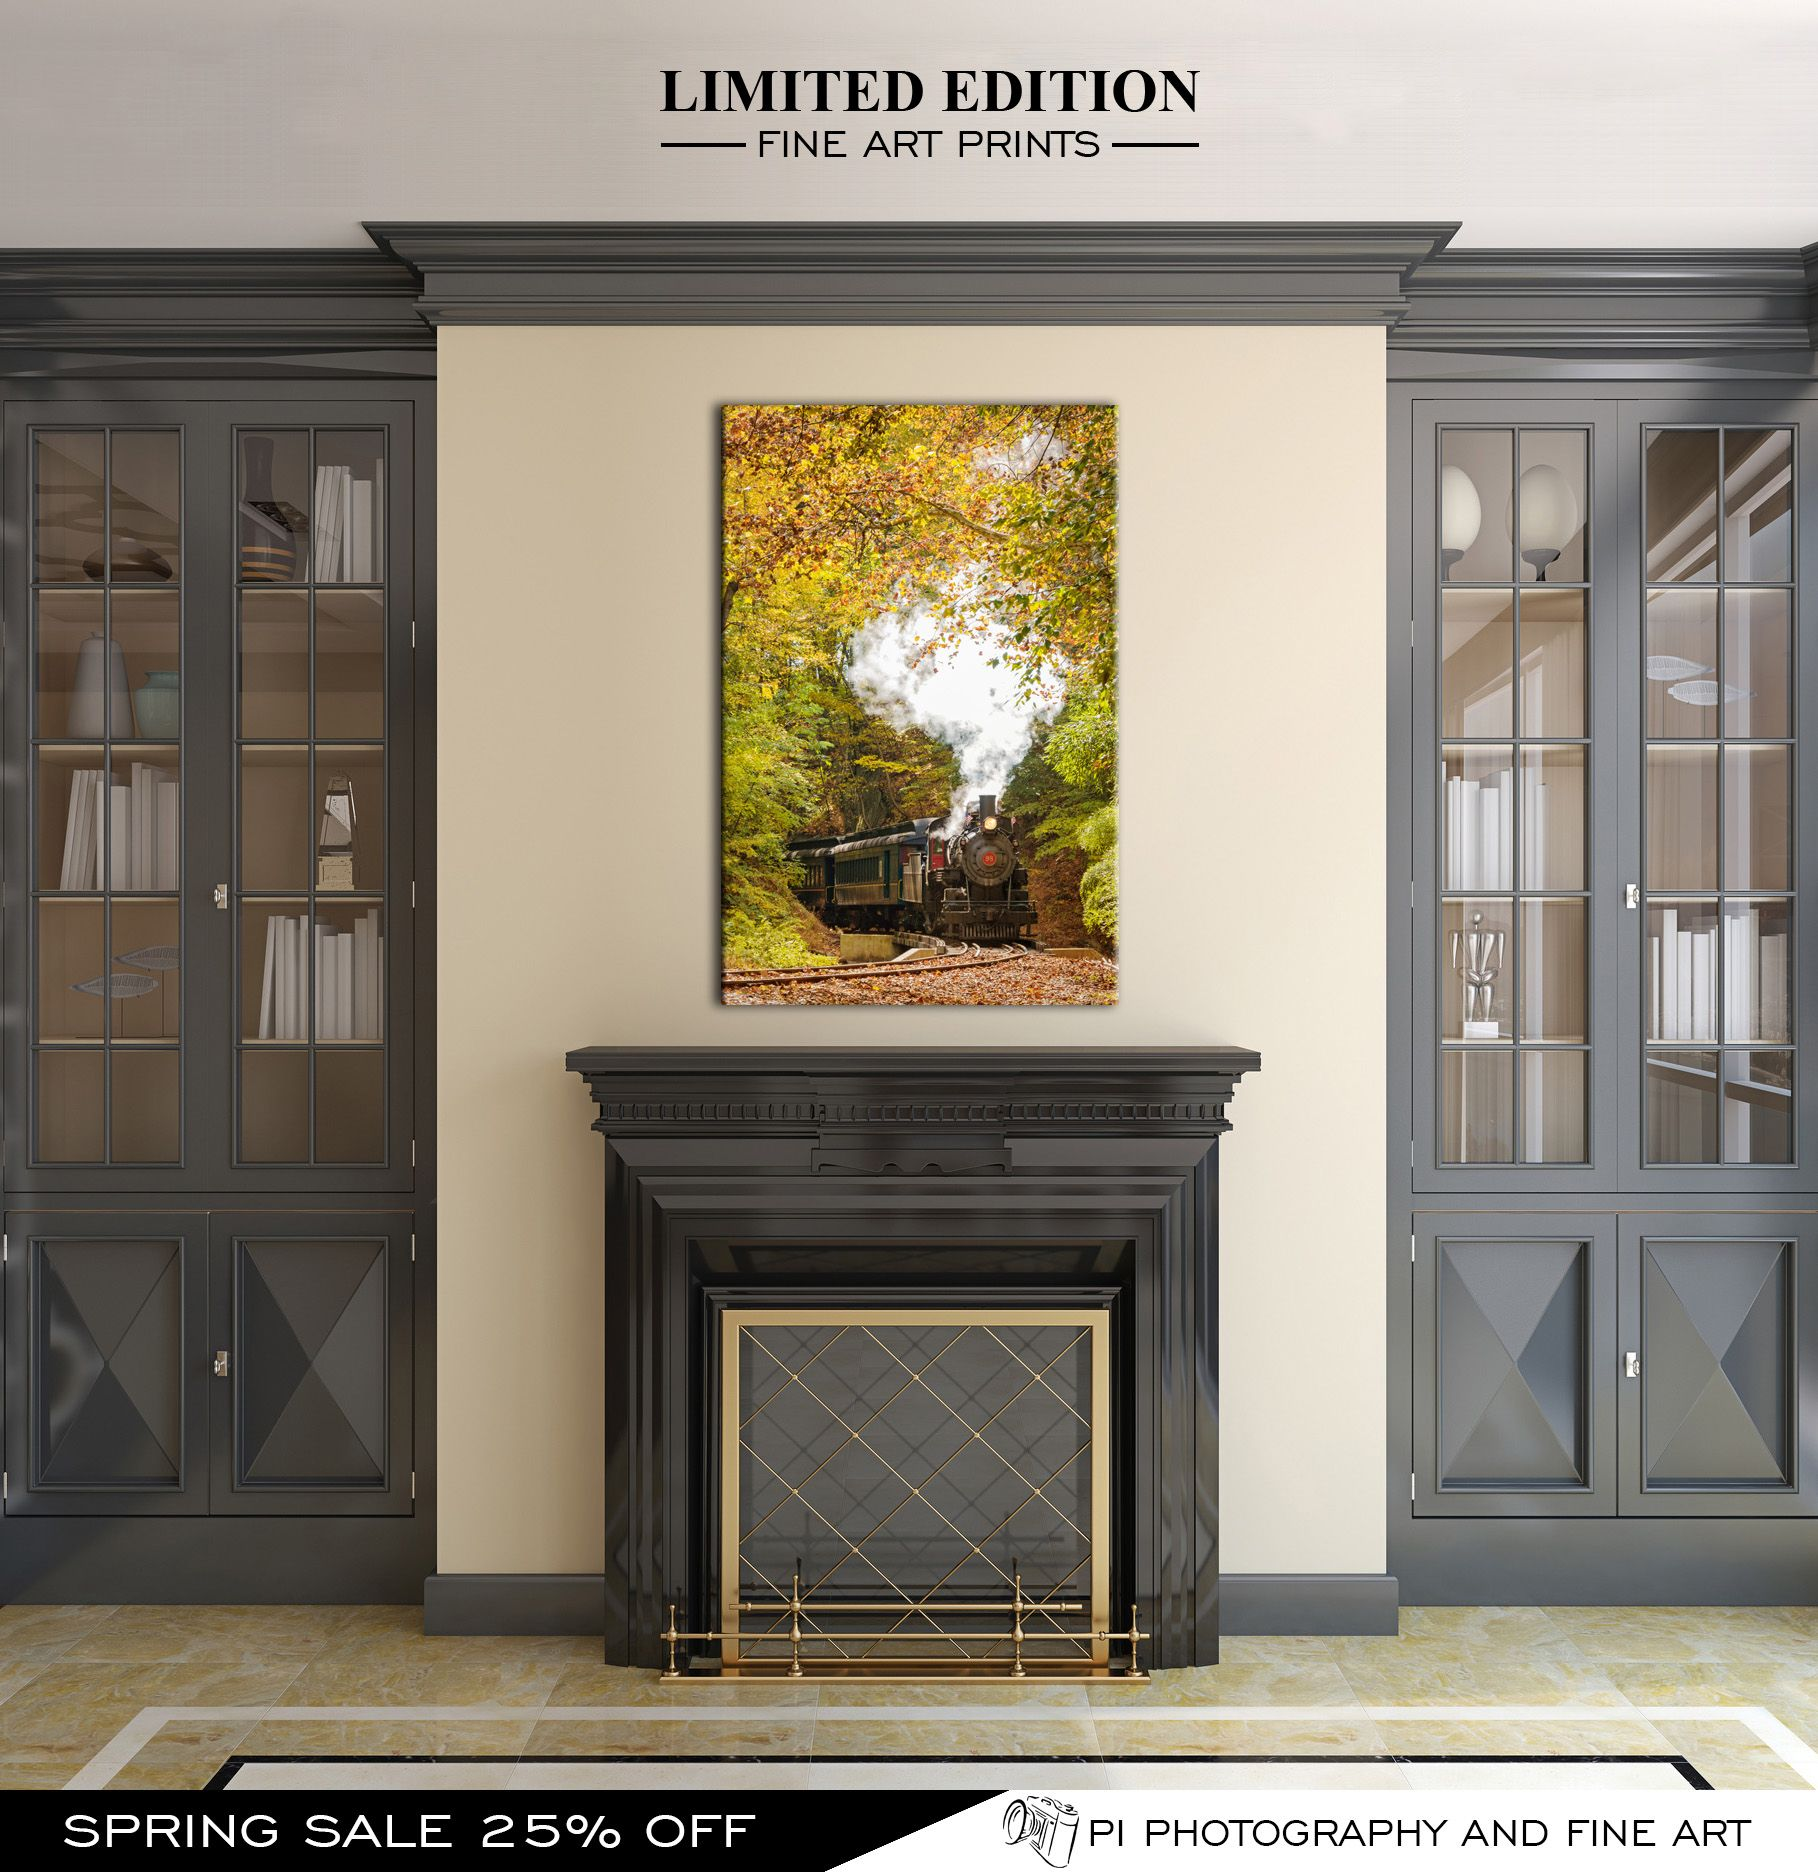 Beautify your home or office interior space with art of nature